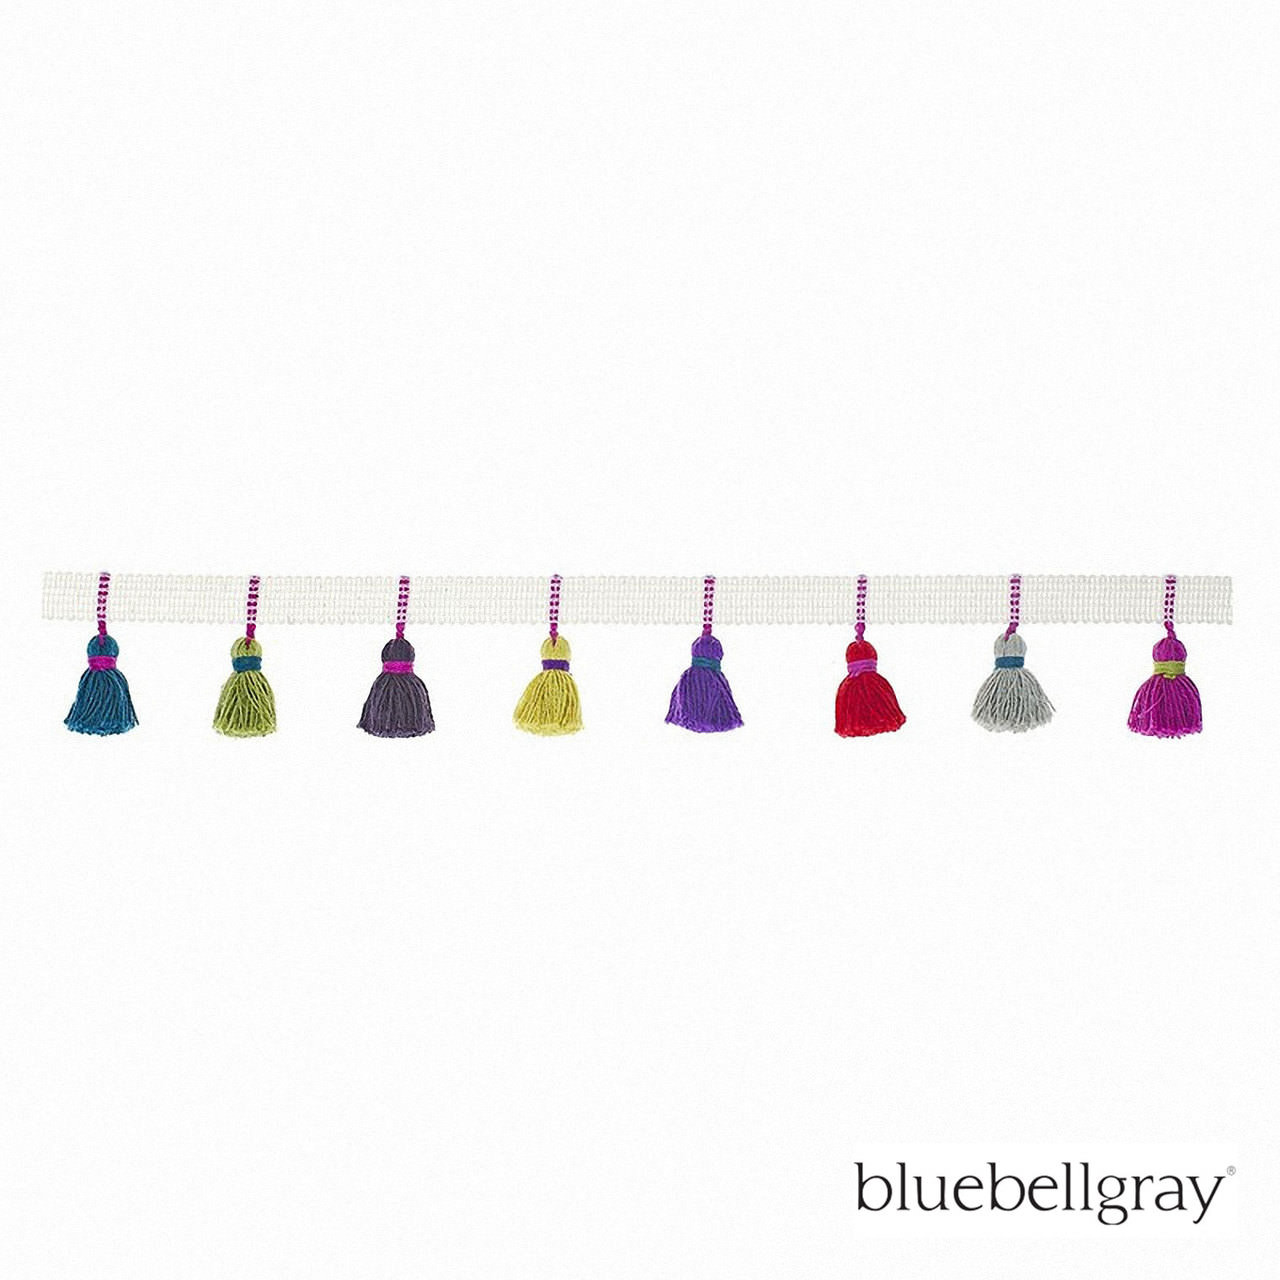 Bluebellgray Tassel Trim - Carnival  | Fringe, Curtain & Upholstery Trim - Blue, Red, Contemporary, Deco, Decorative, Natural Fibre, Pink, Purple, Domestic Use, Natural